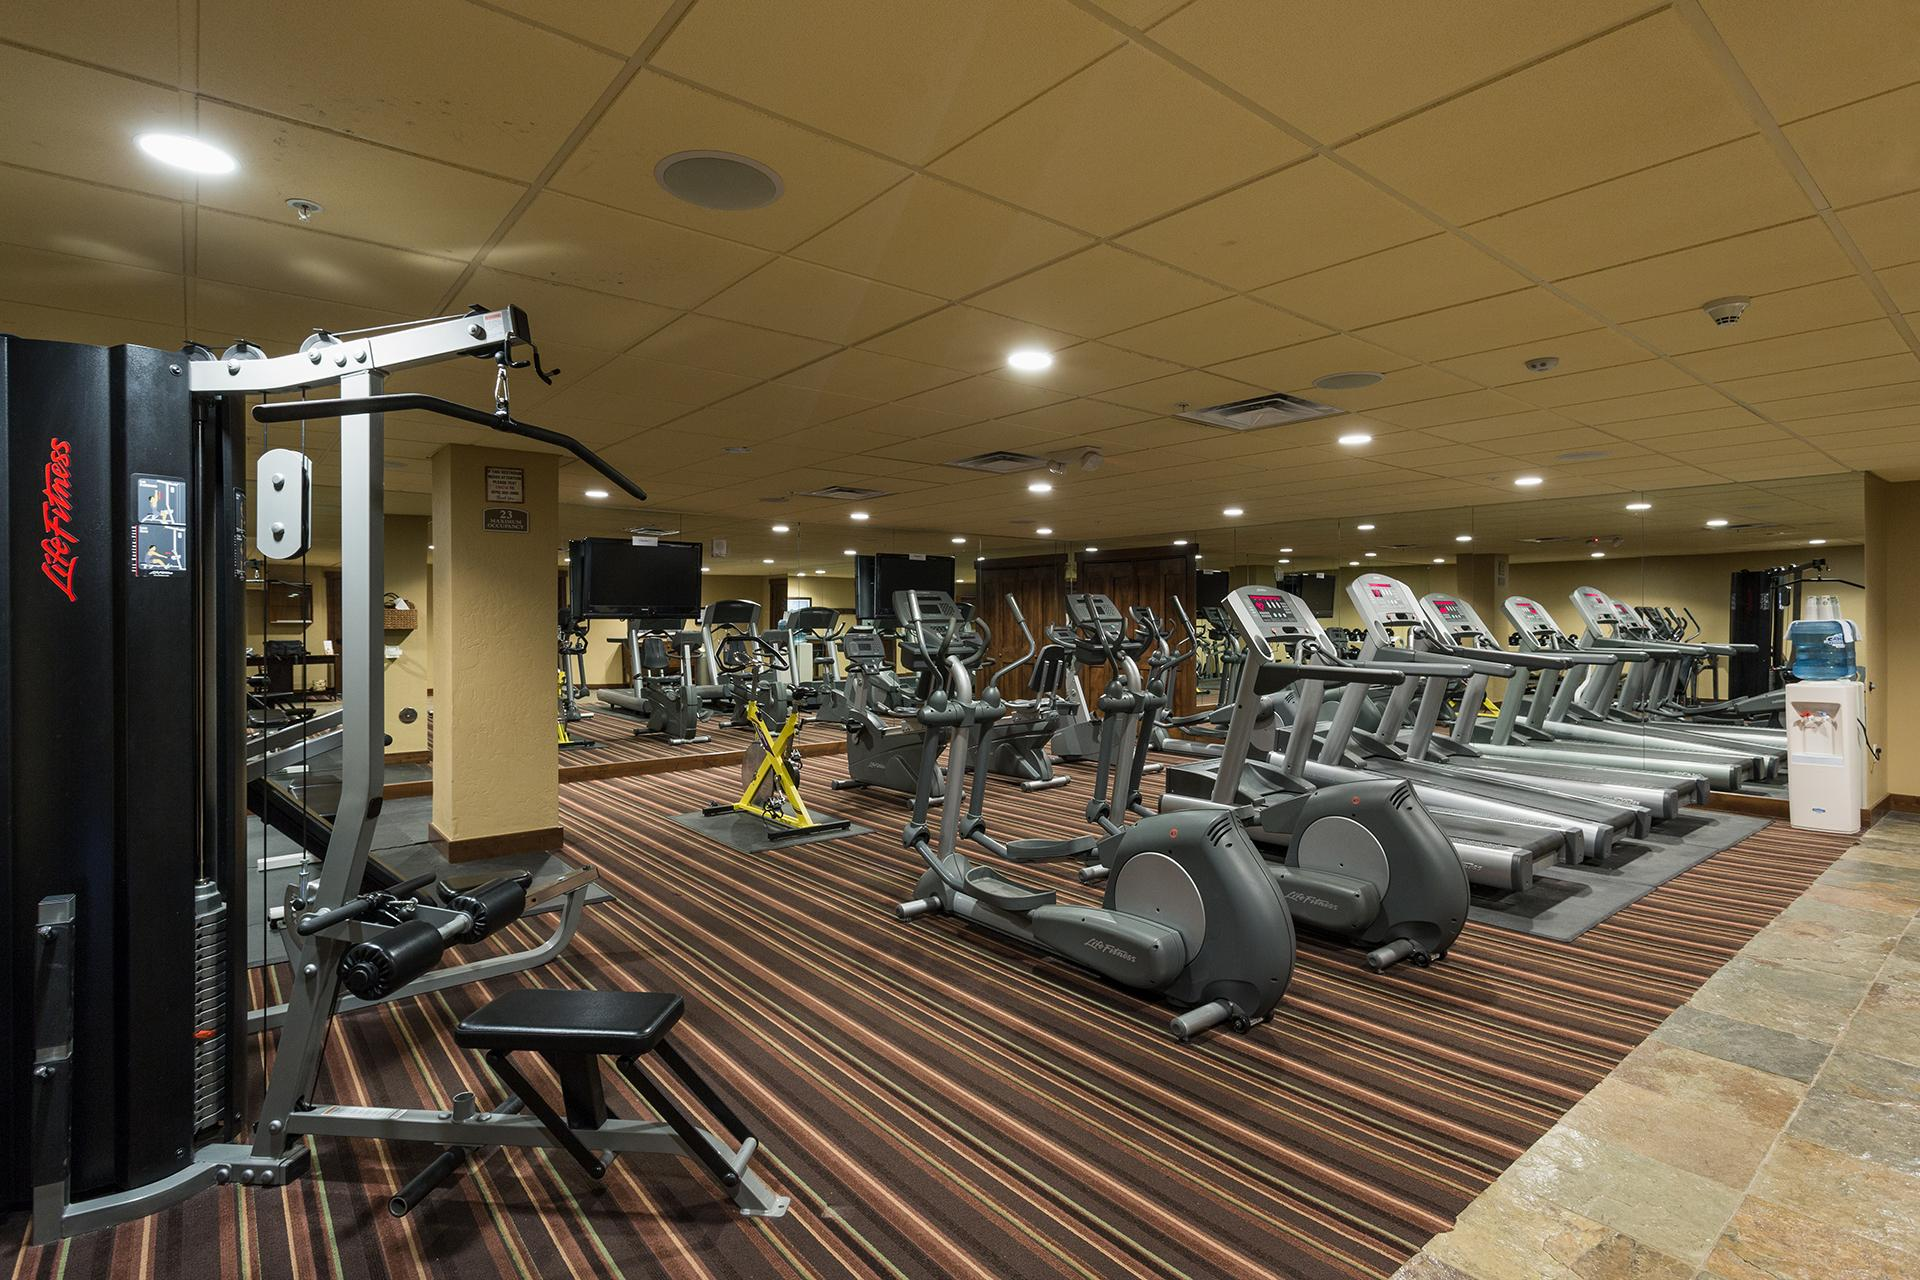 Durango Mountain Club - Gym - Located right across from the condo